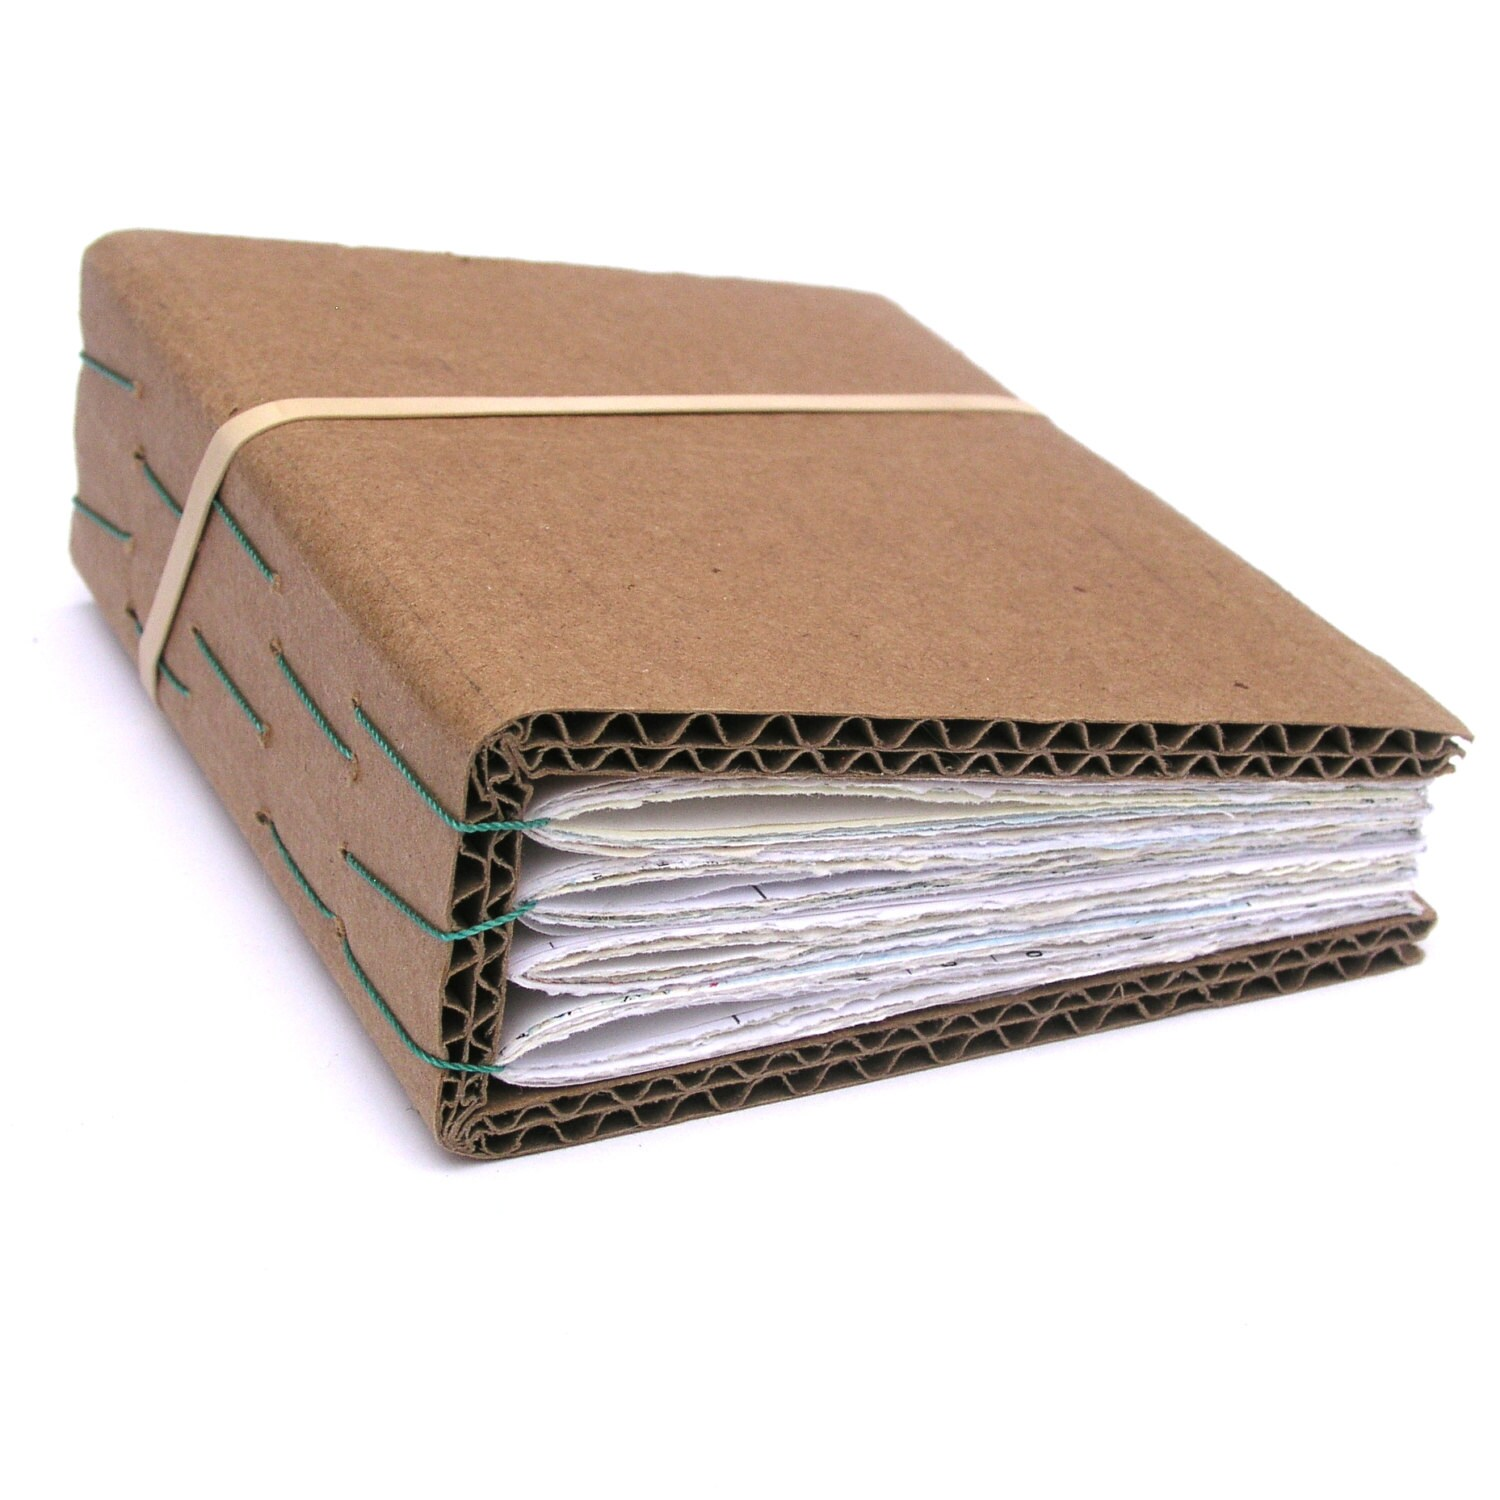 How To Make A Book Cover Out Of Cardboard : Cardboard handbound recycled ephemera paper book